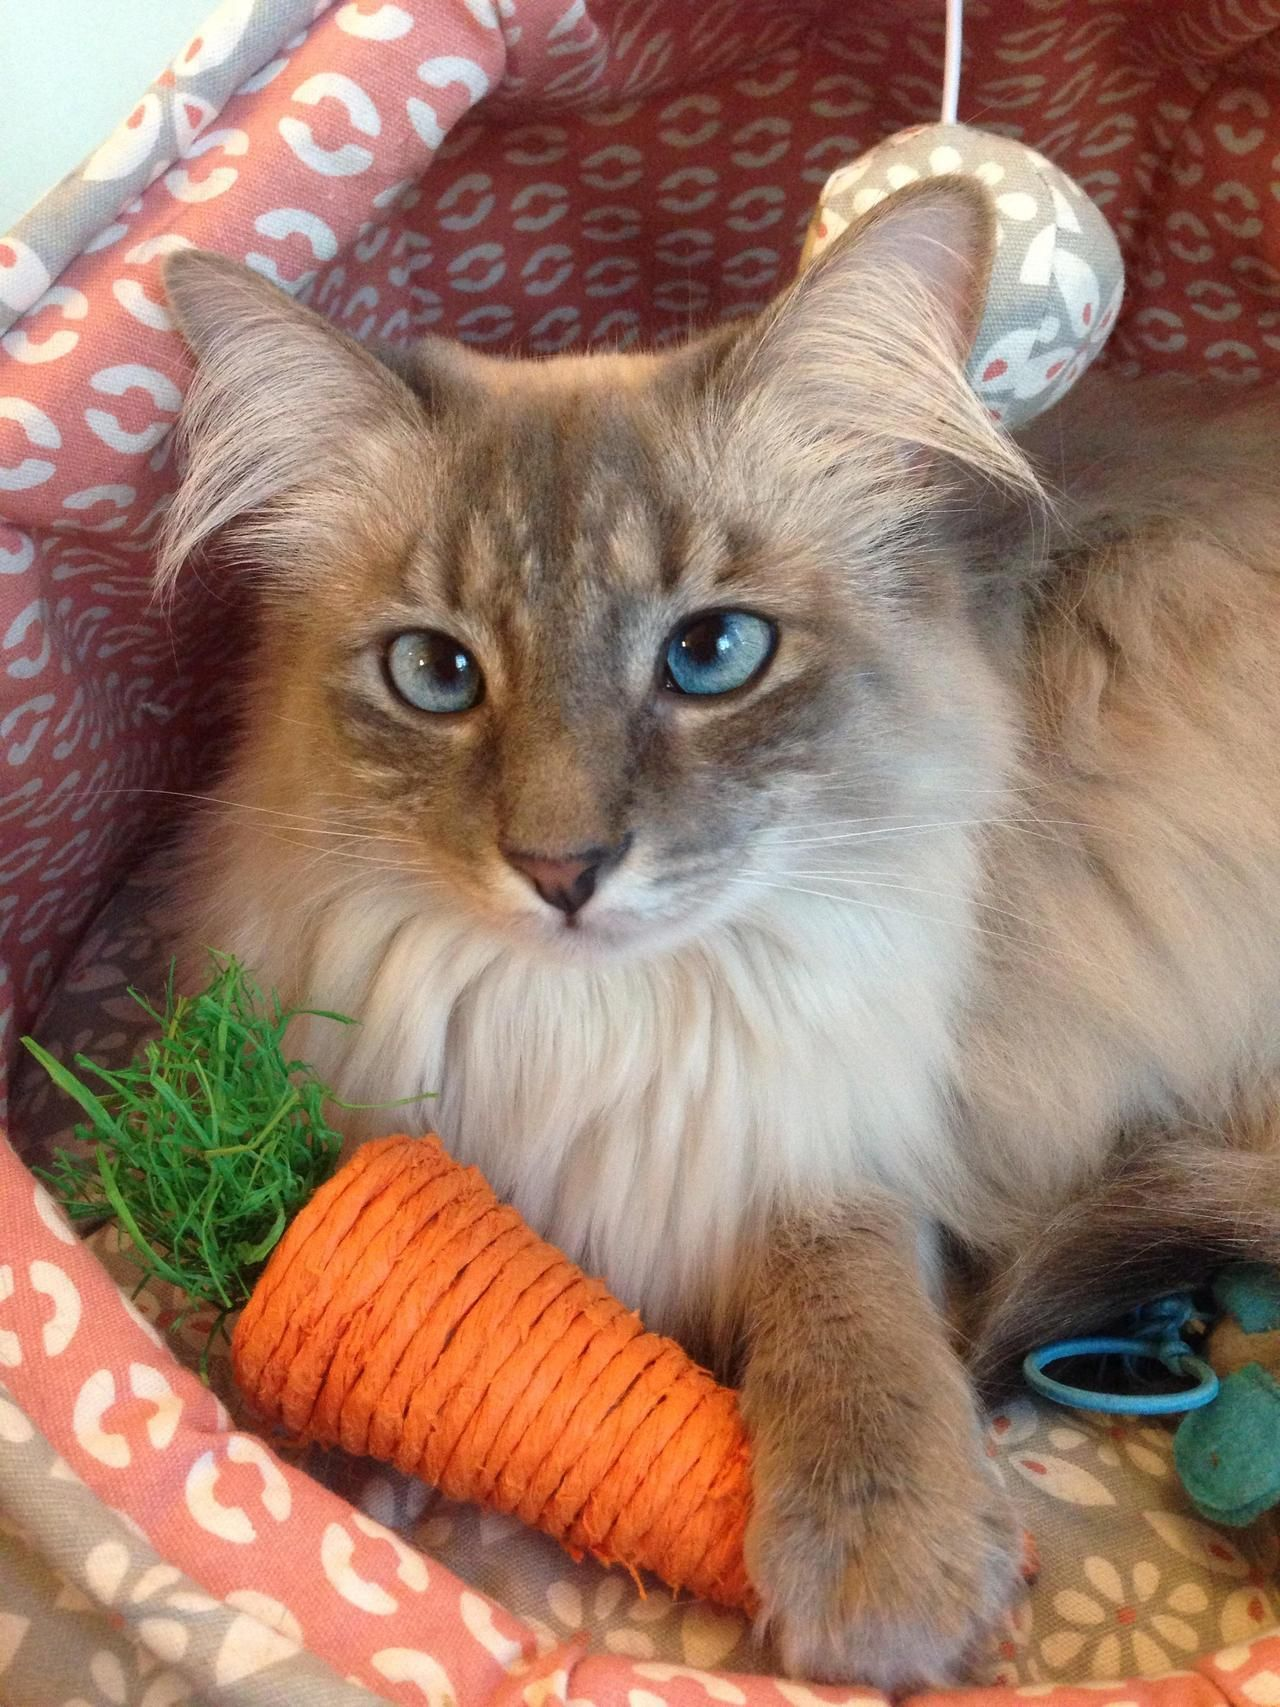 Do you need a kitten carrot Do cats eat fruits and vegetables And what else do they eat